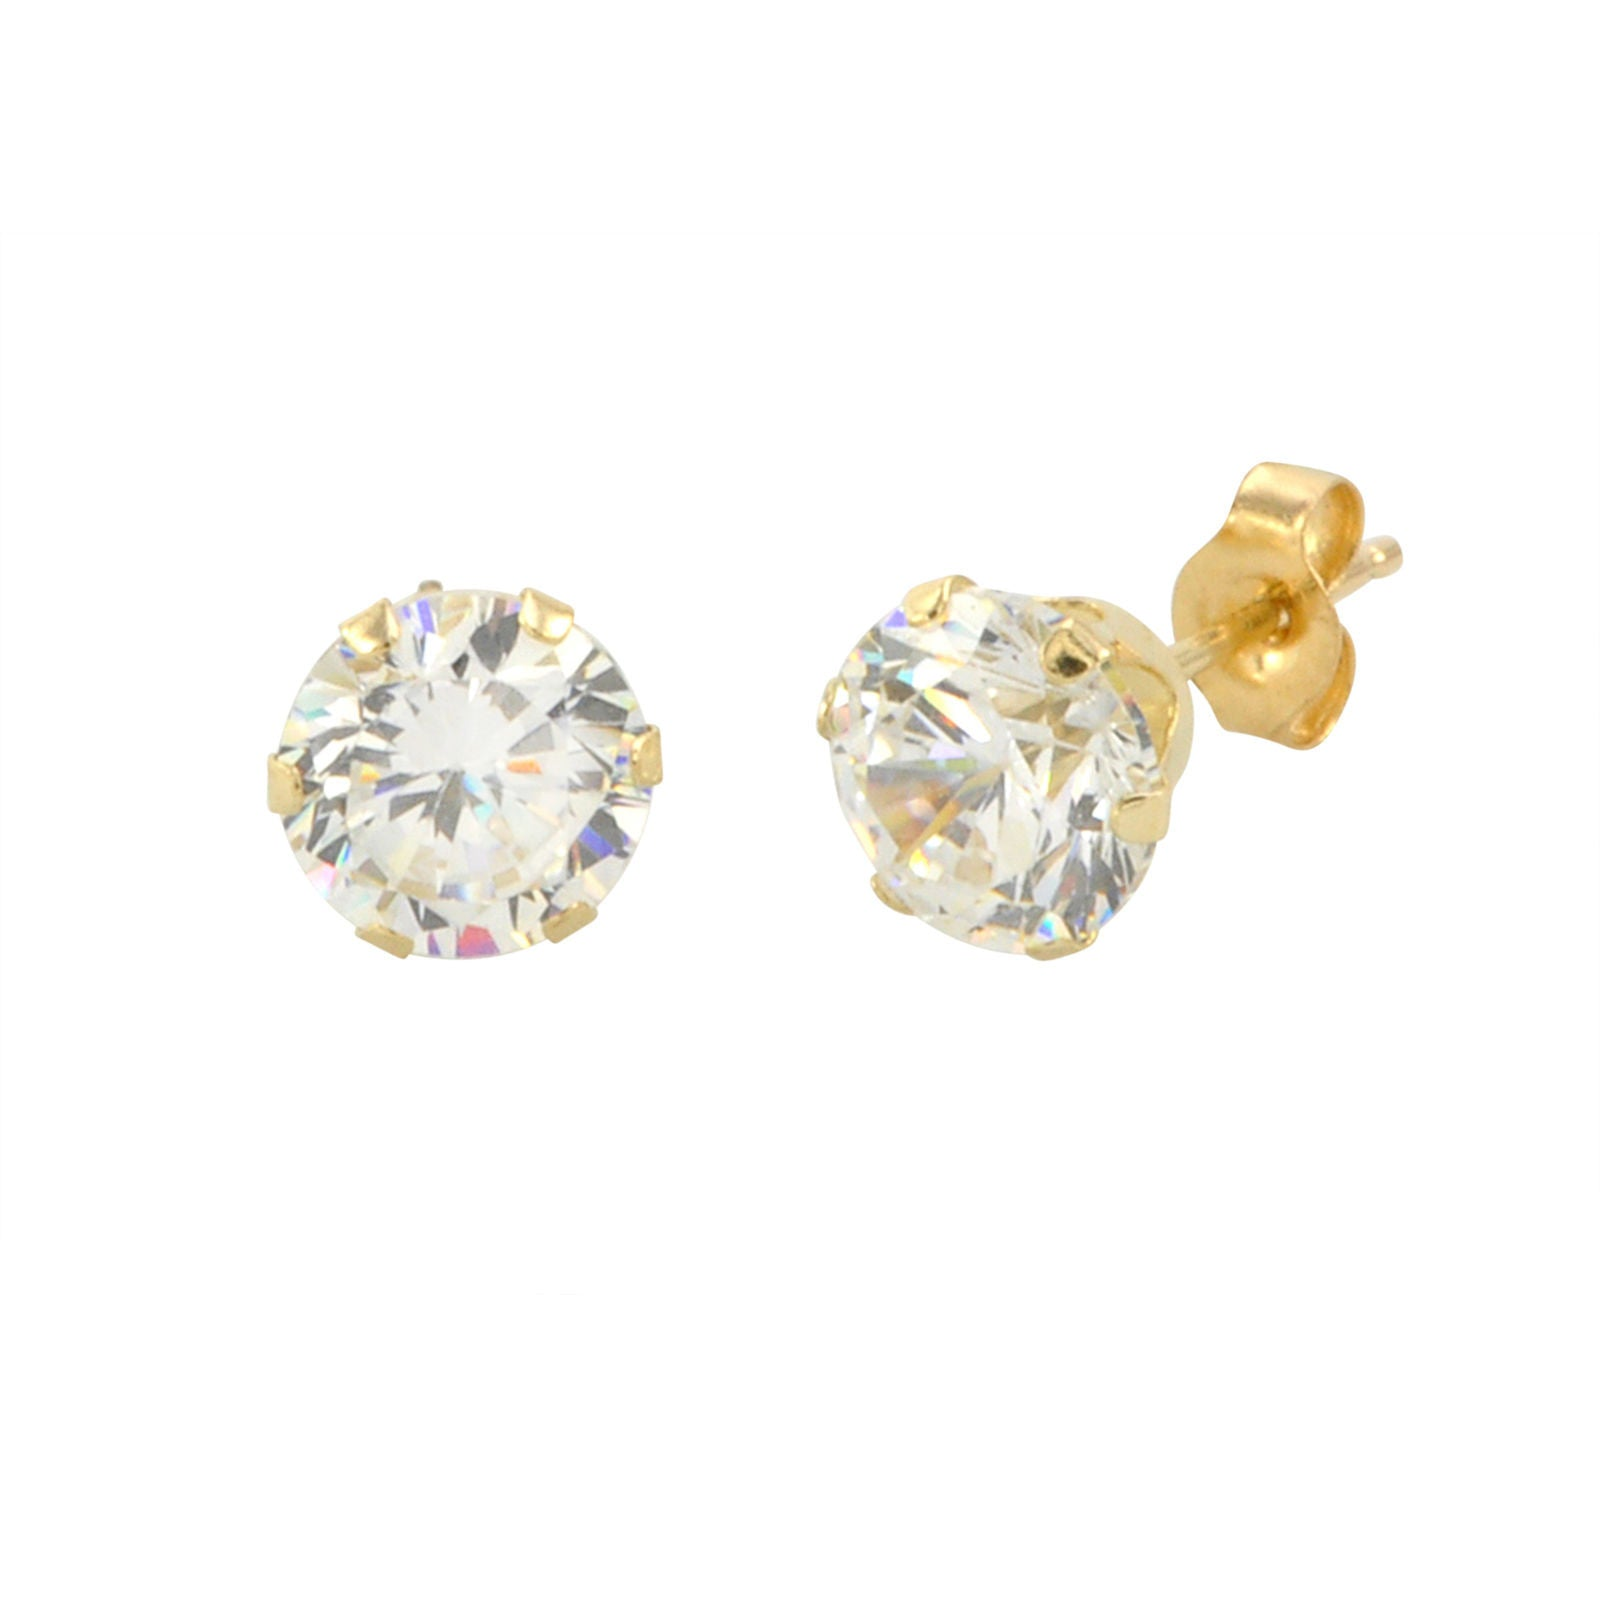 context stud earrings beaverbrooks the p zirconia cubic large gold